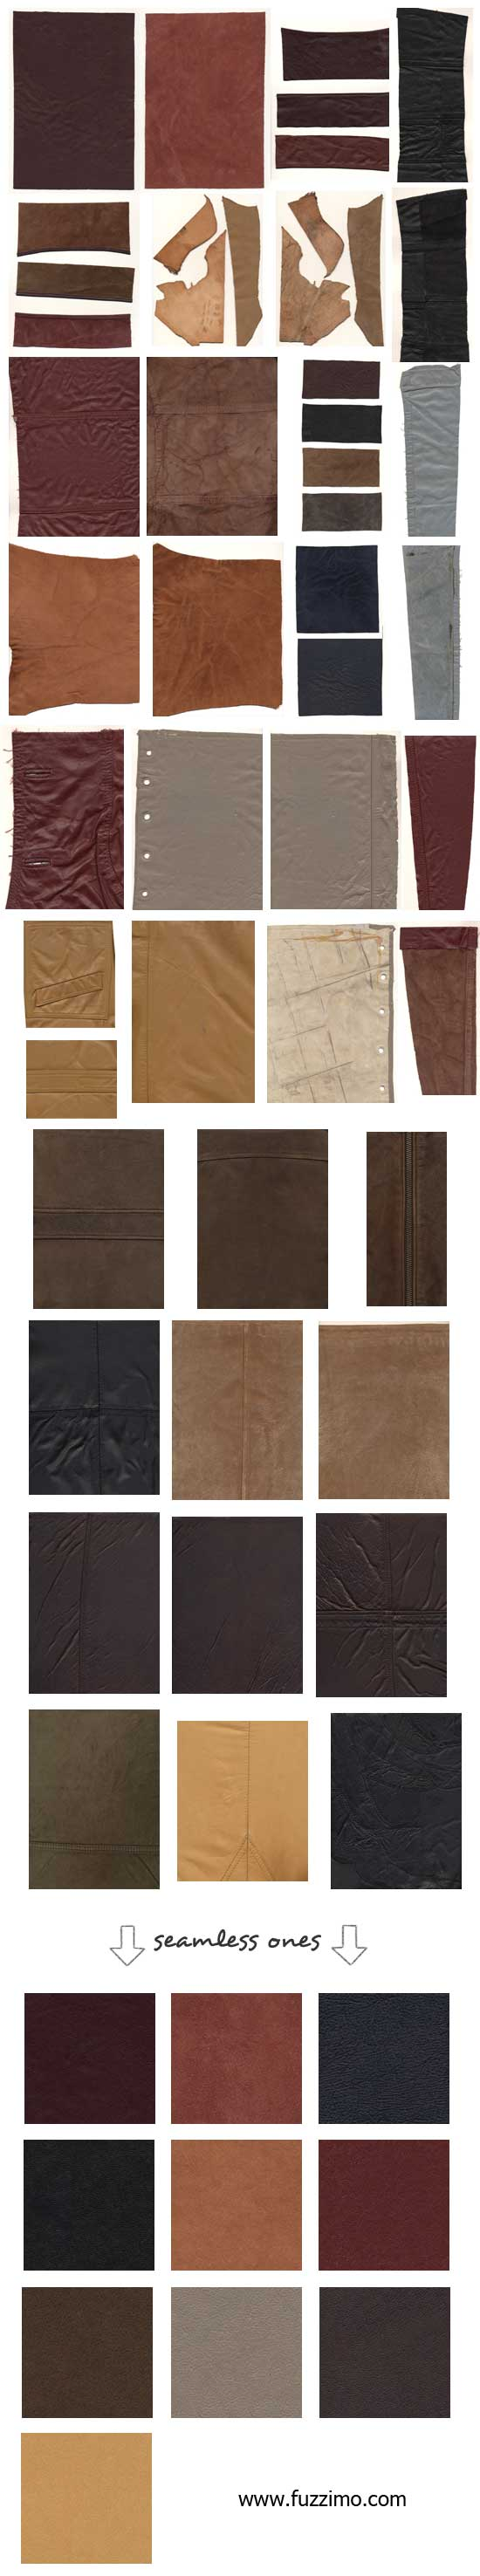 fzm-Leather Textures-03